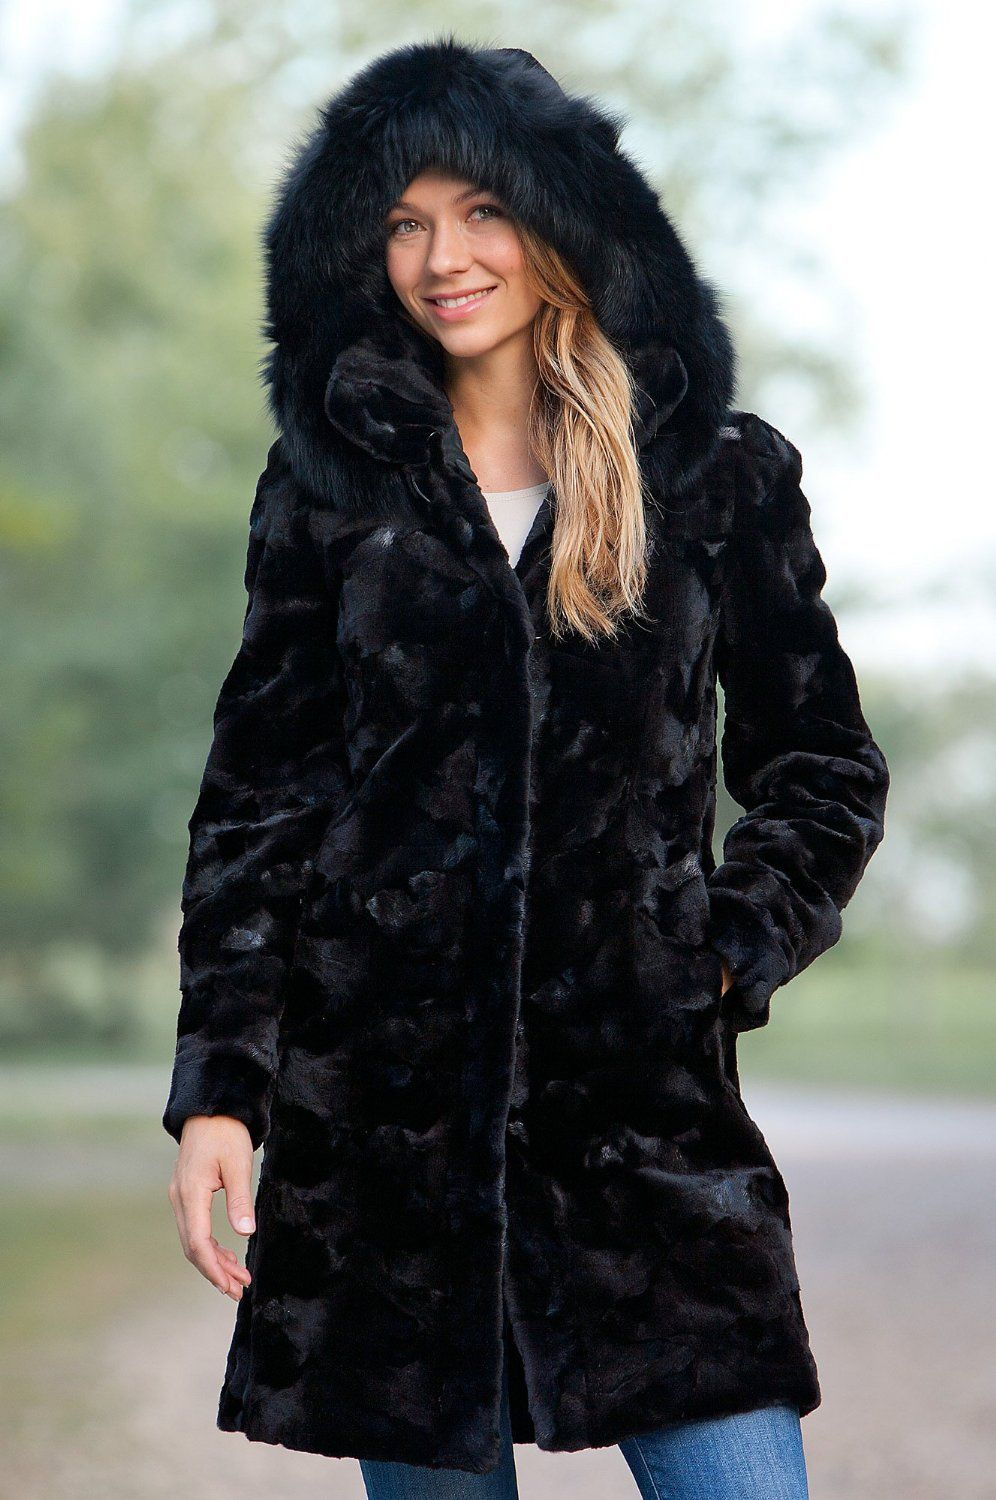 warmest winter coats for women | Womens Coats | Pinterest | Coats ...